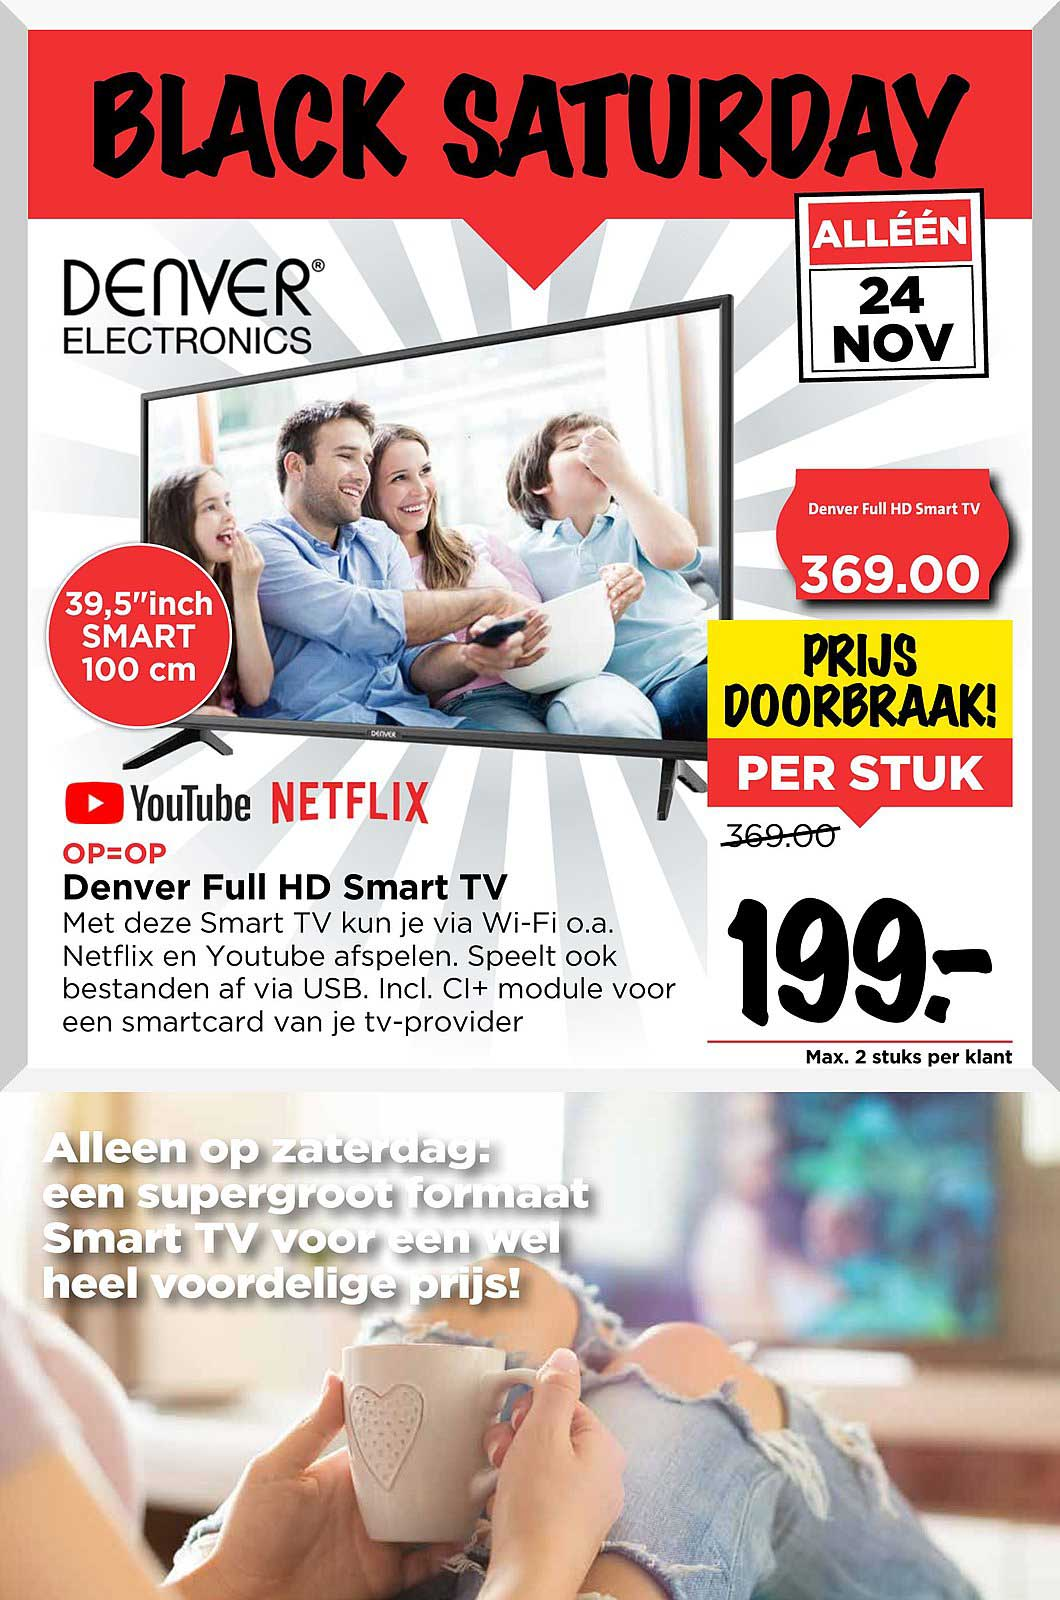 Vomar Denver Full Hd Smart Tv